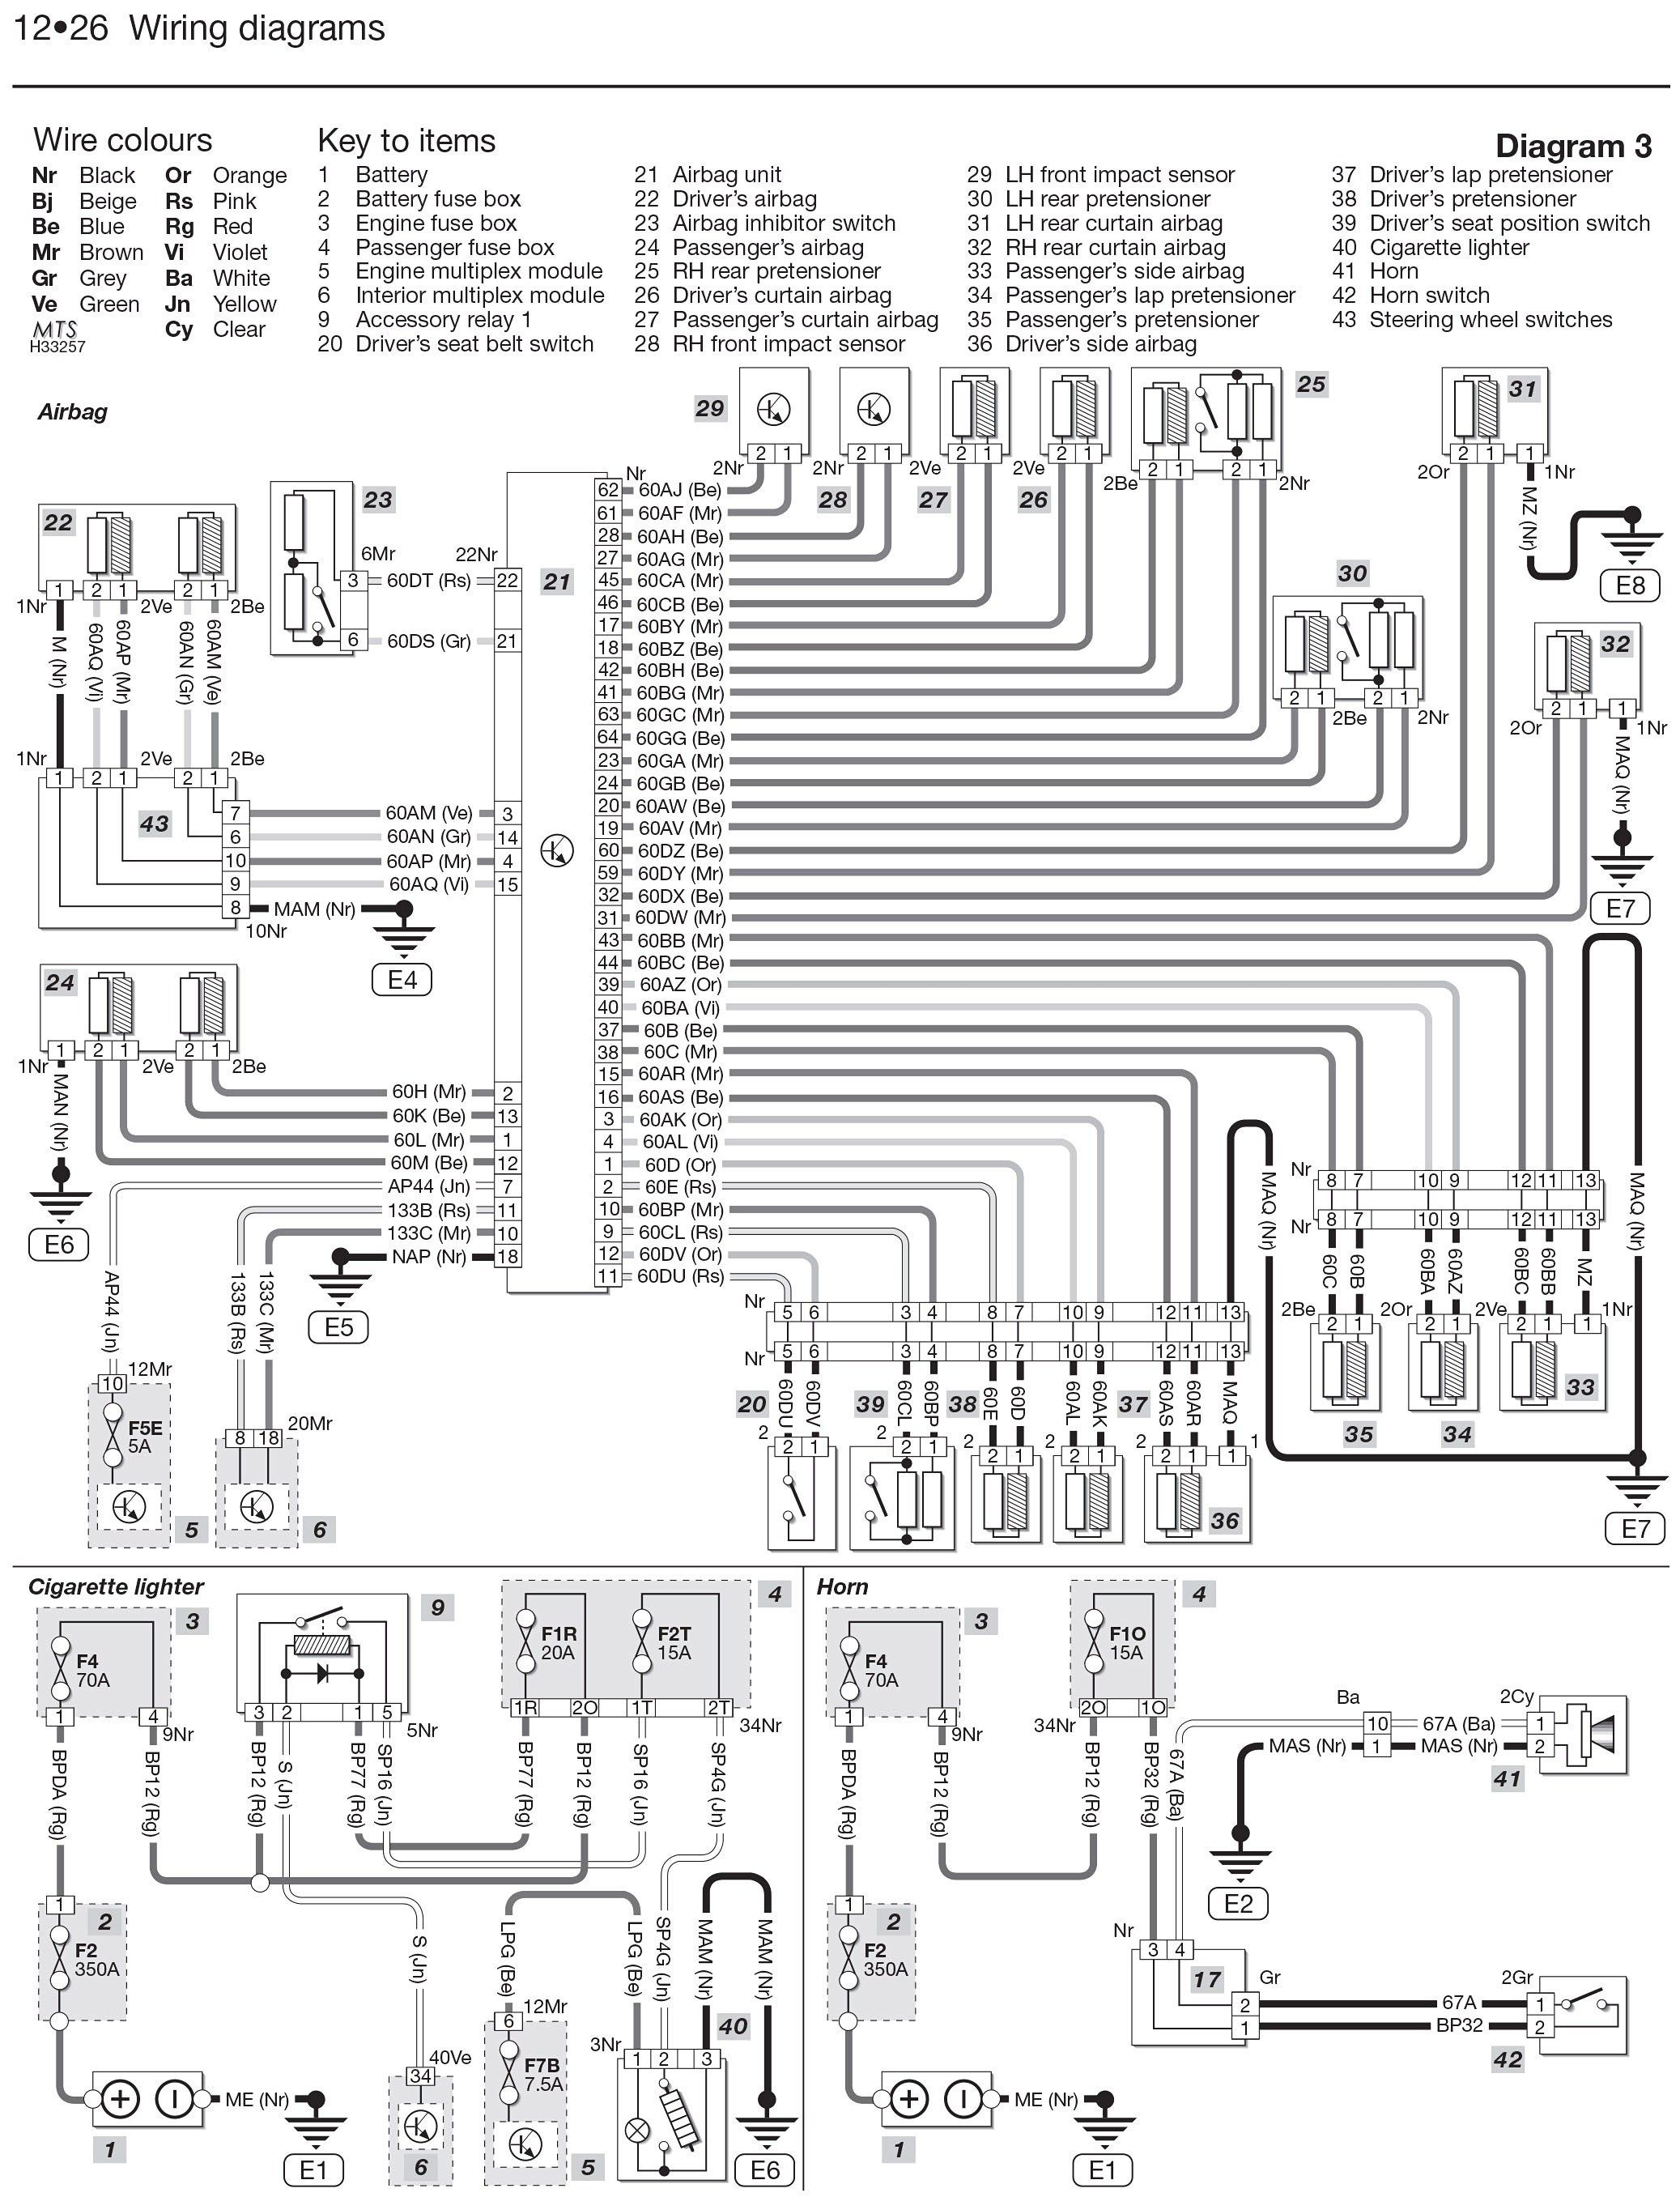 [SCHEMATICS_48ZD]  New Laguna Guitar Wiring Diagram #diagram #diagramsample #diagramtemplate |  Diagram, Renault fluence, Renault megane | Renault Rx4 Wiring Diagram |  | Pinterest